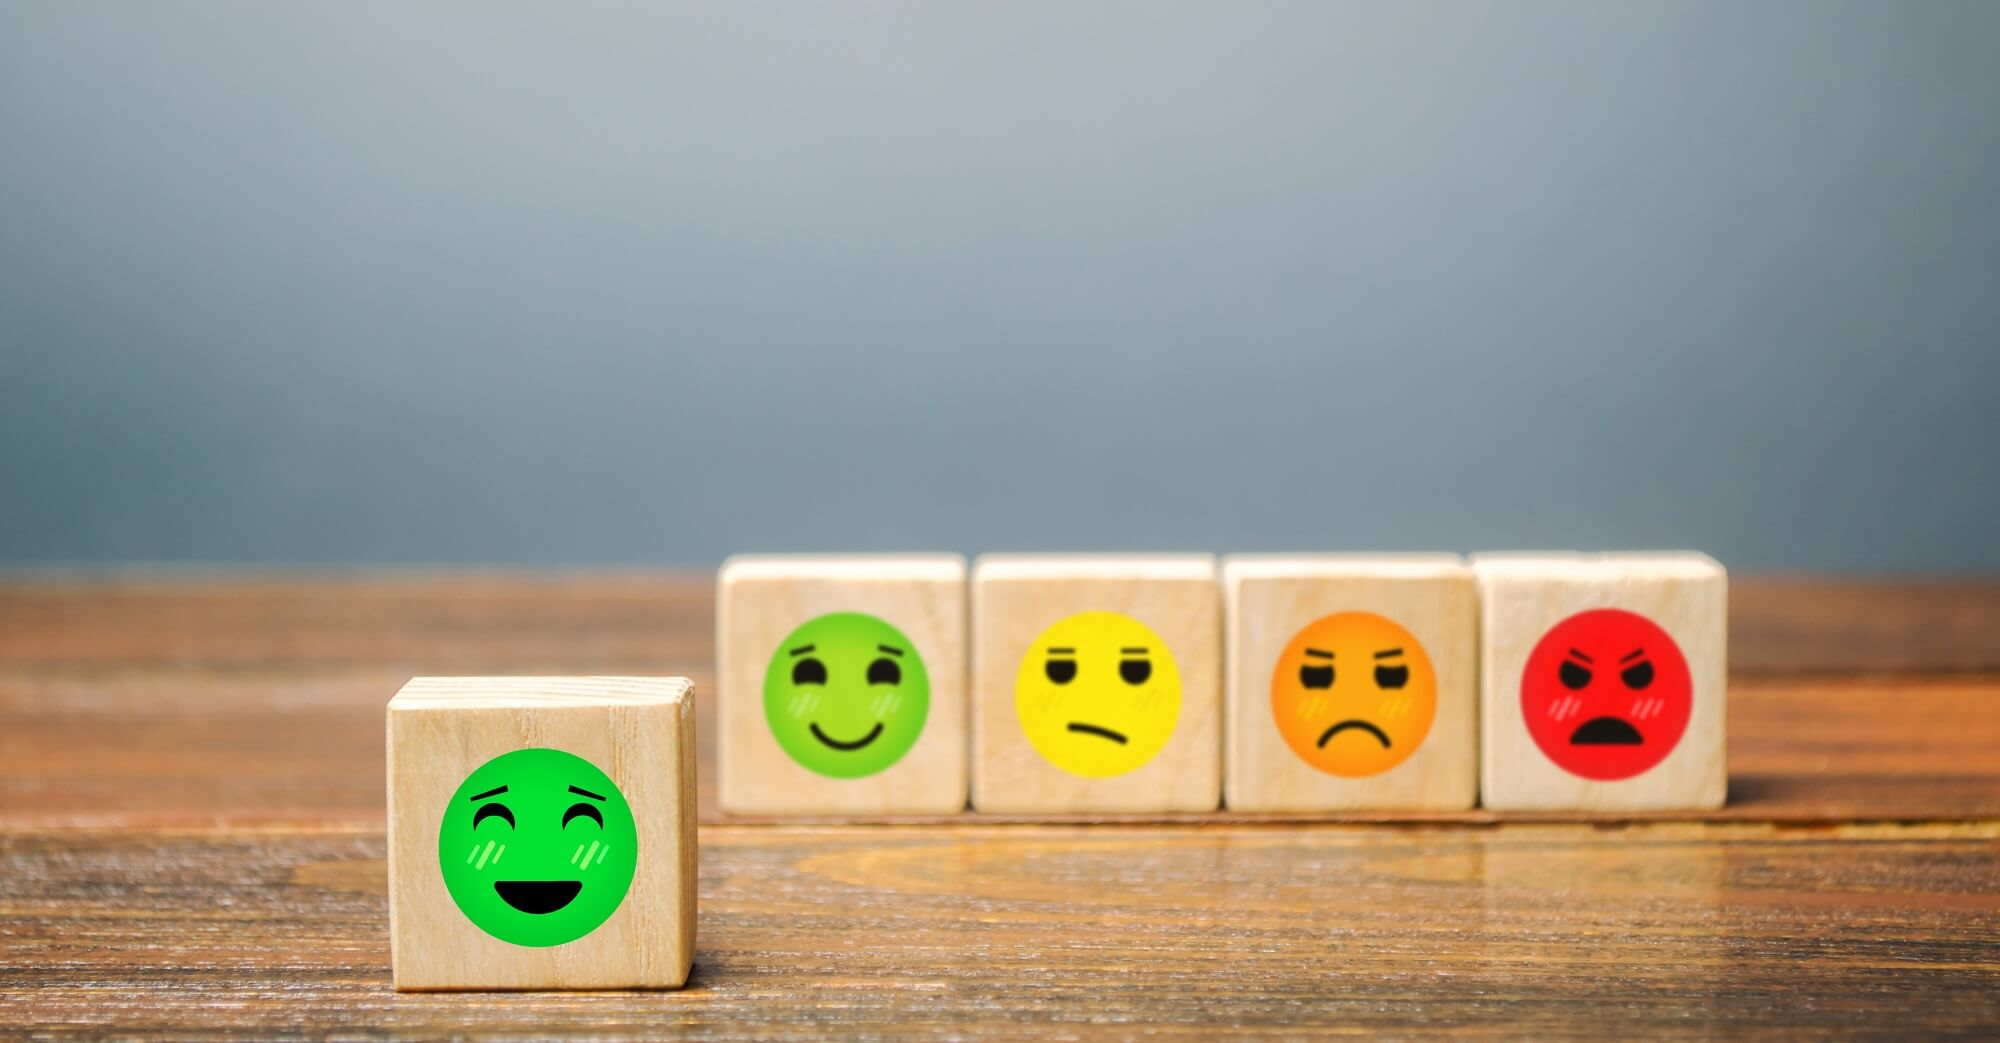 A series of blocks with faces from happy to angry.